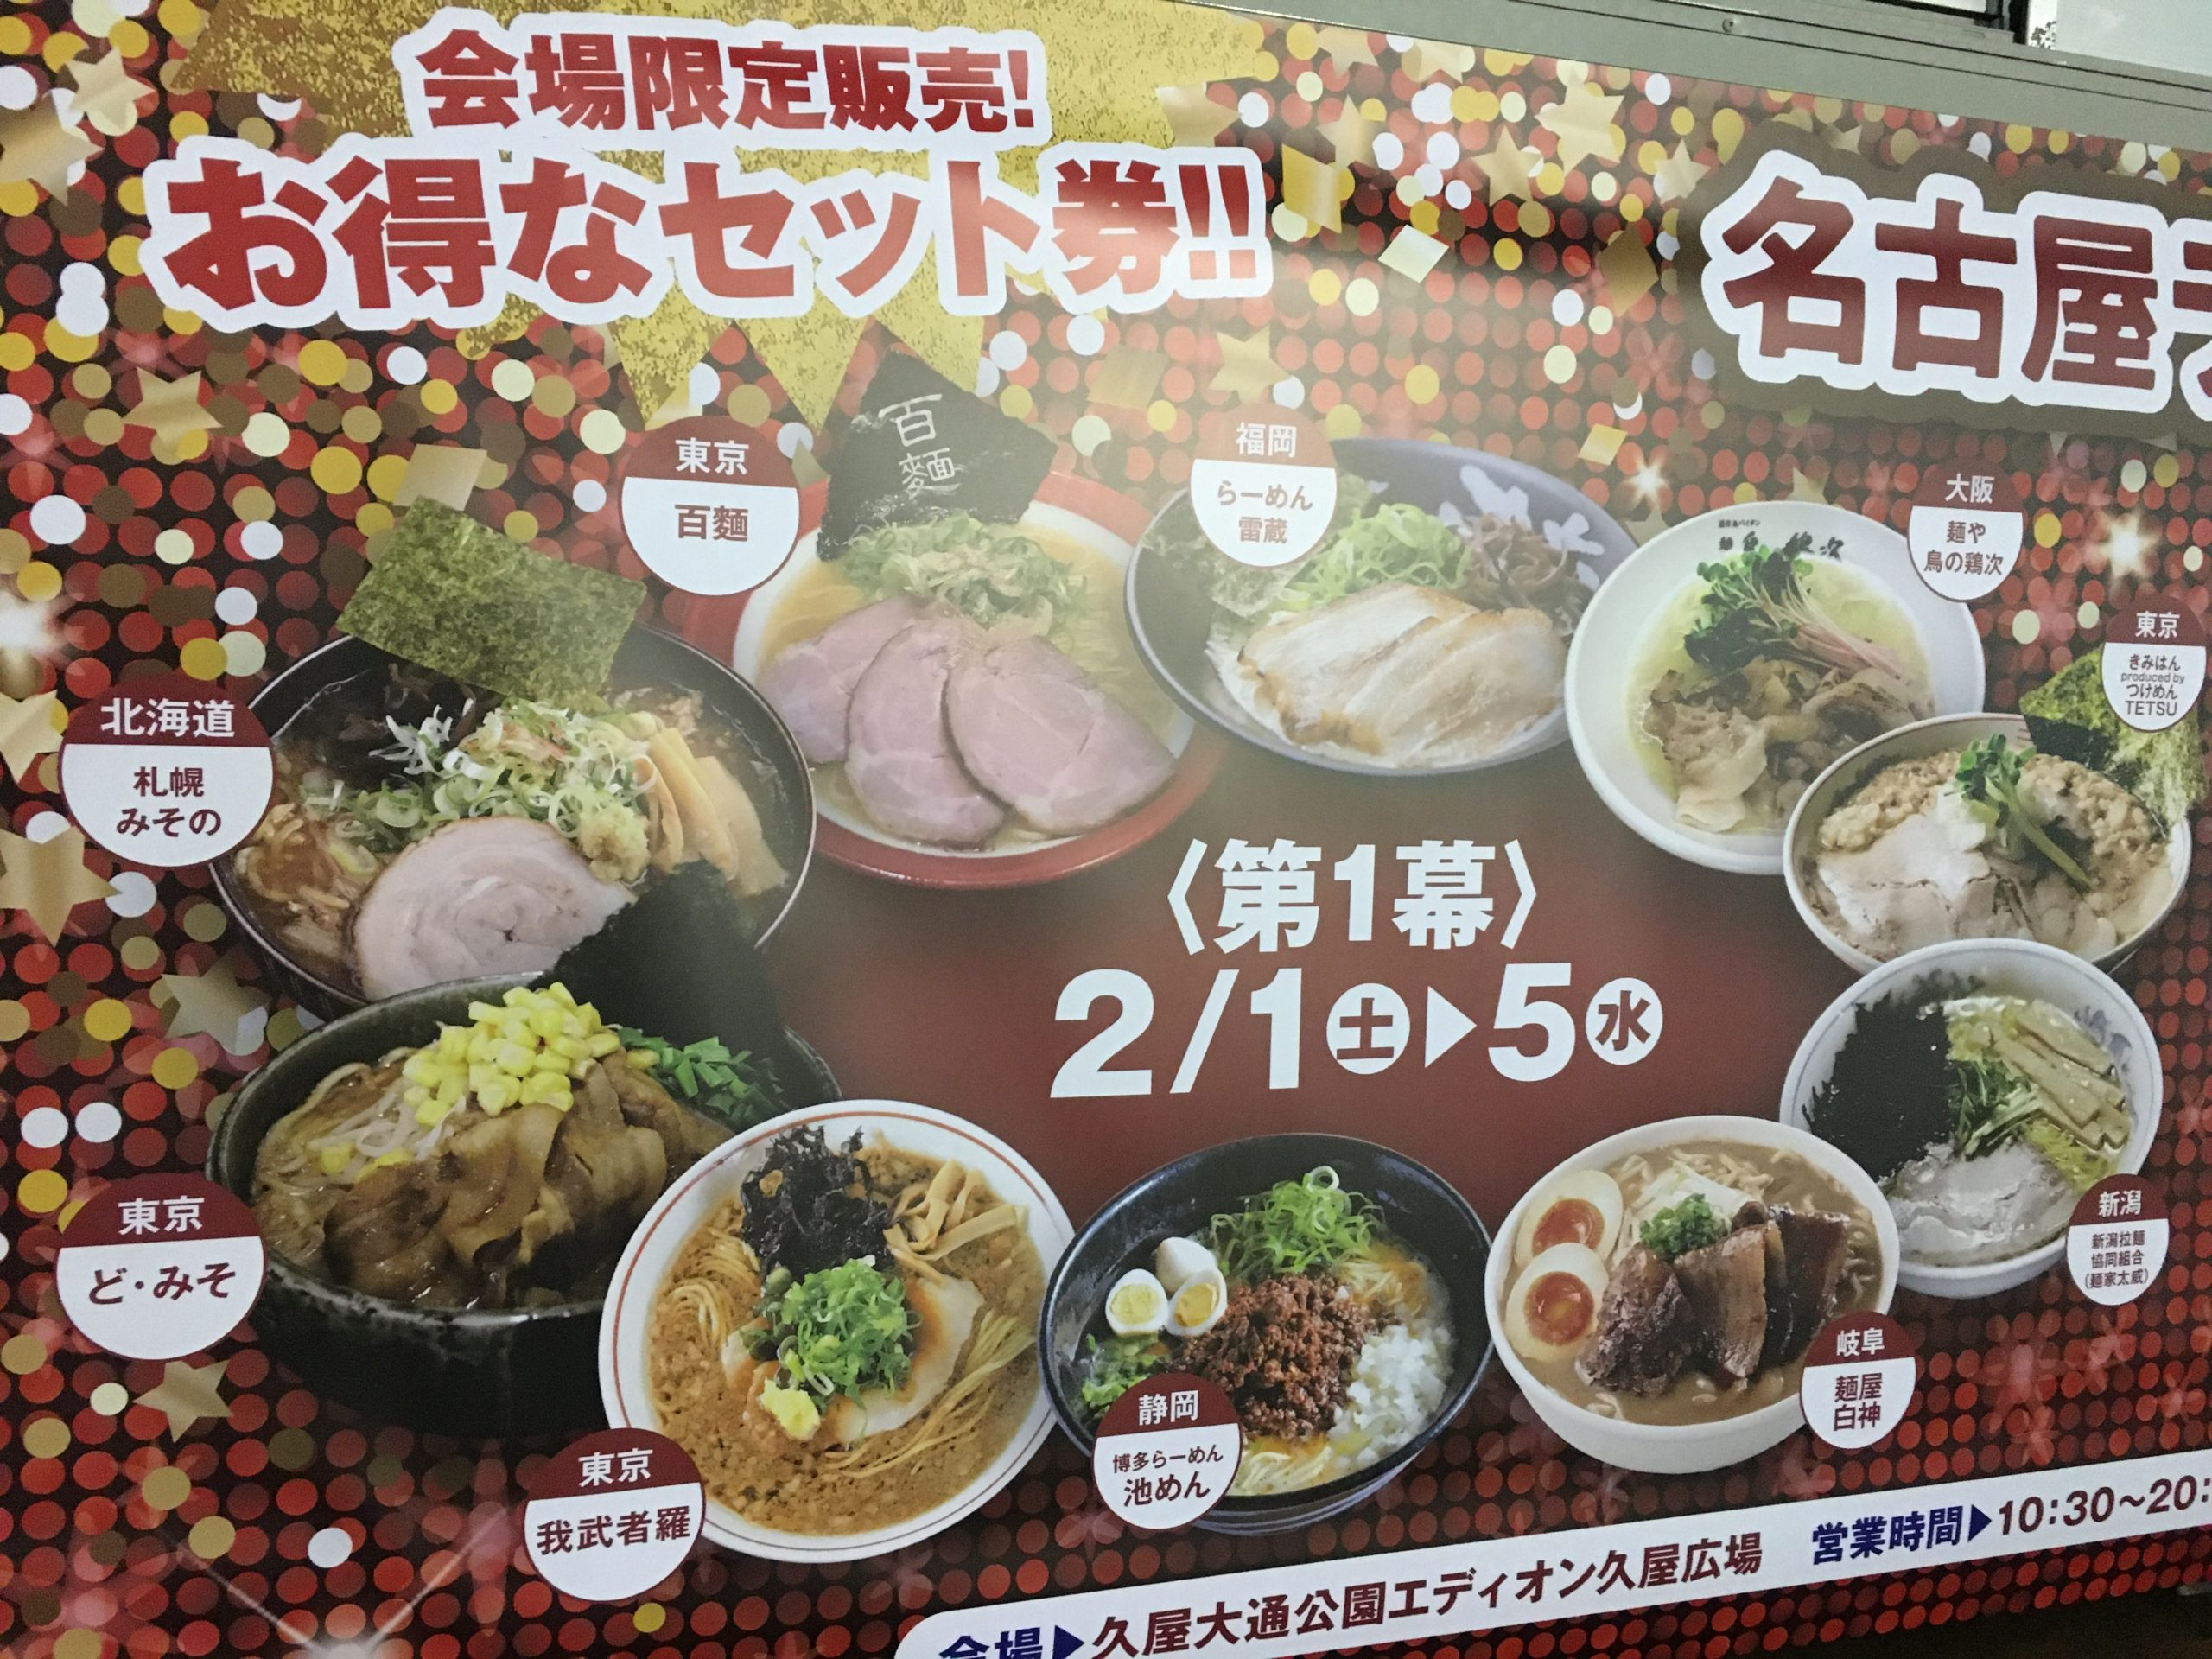 nagoya-sakae-ramen-events